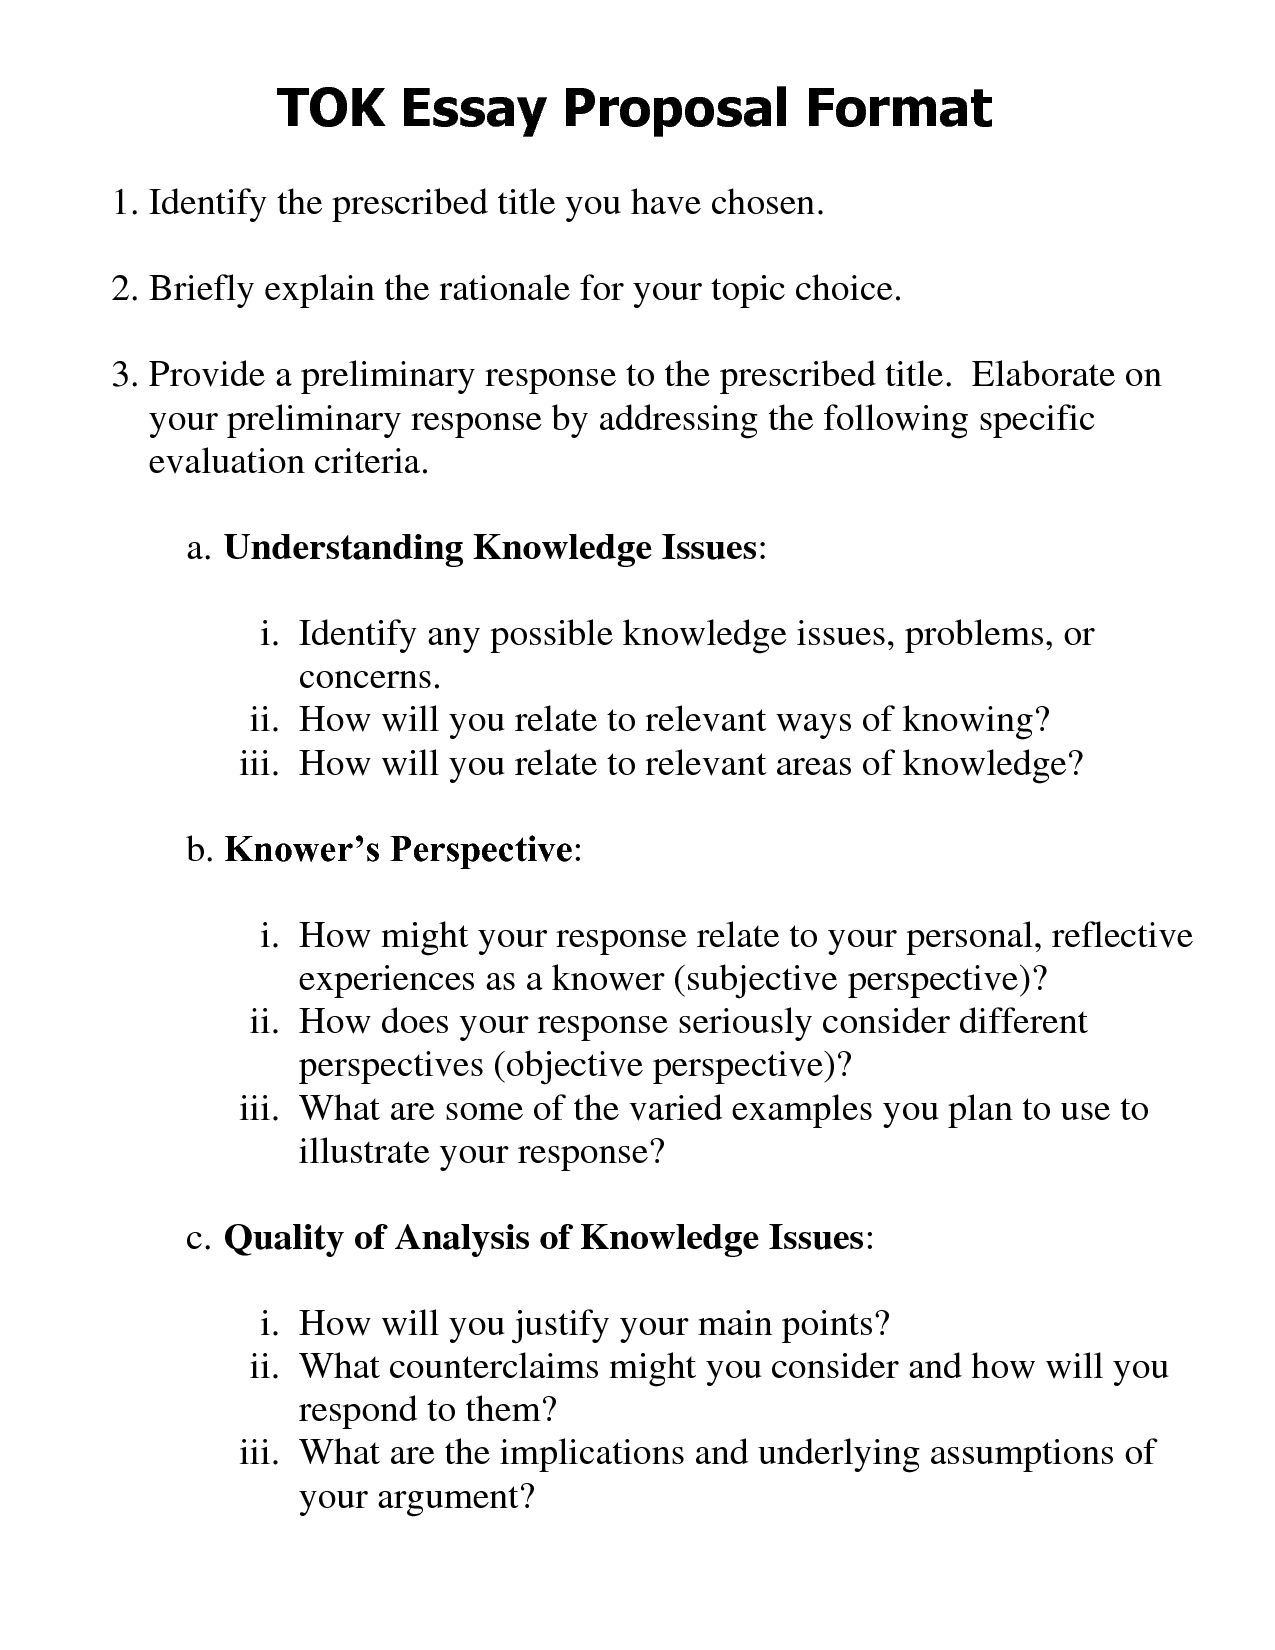 candide essay topics quick essay topics choosing an essay topic  proposal essays proposal essay writing teacher tools proposal example essay proposal paper essaywrite my thesis proposition